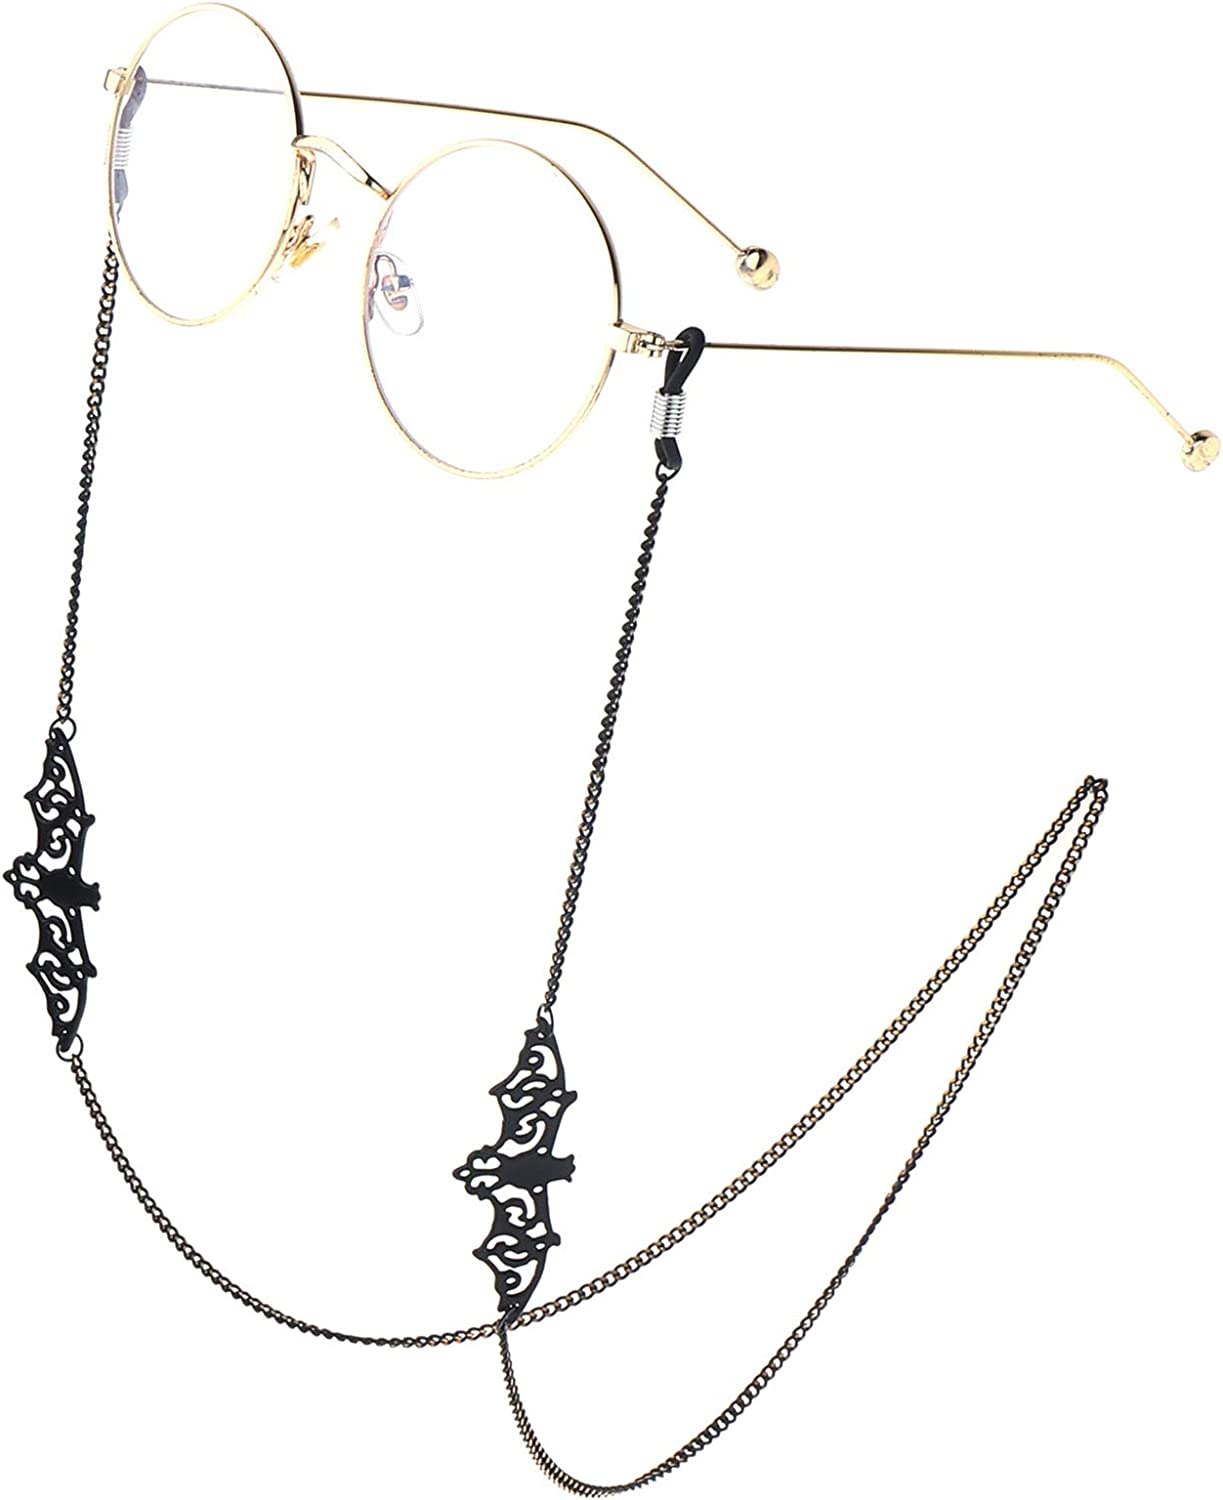 Soapow Eyeglass Chain Hollow-out Bat Eyeglass ,Chain Anti-rust And Durable Eyeglasses String Holder Necklace Chain Great for Daily Travel Banquet